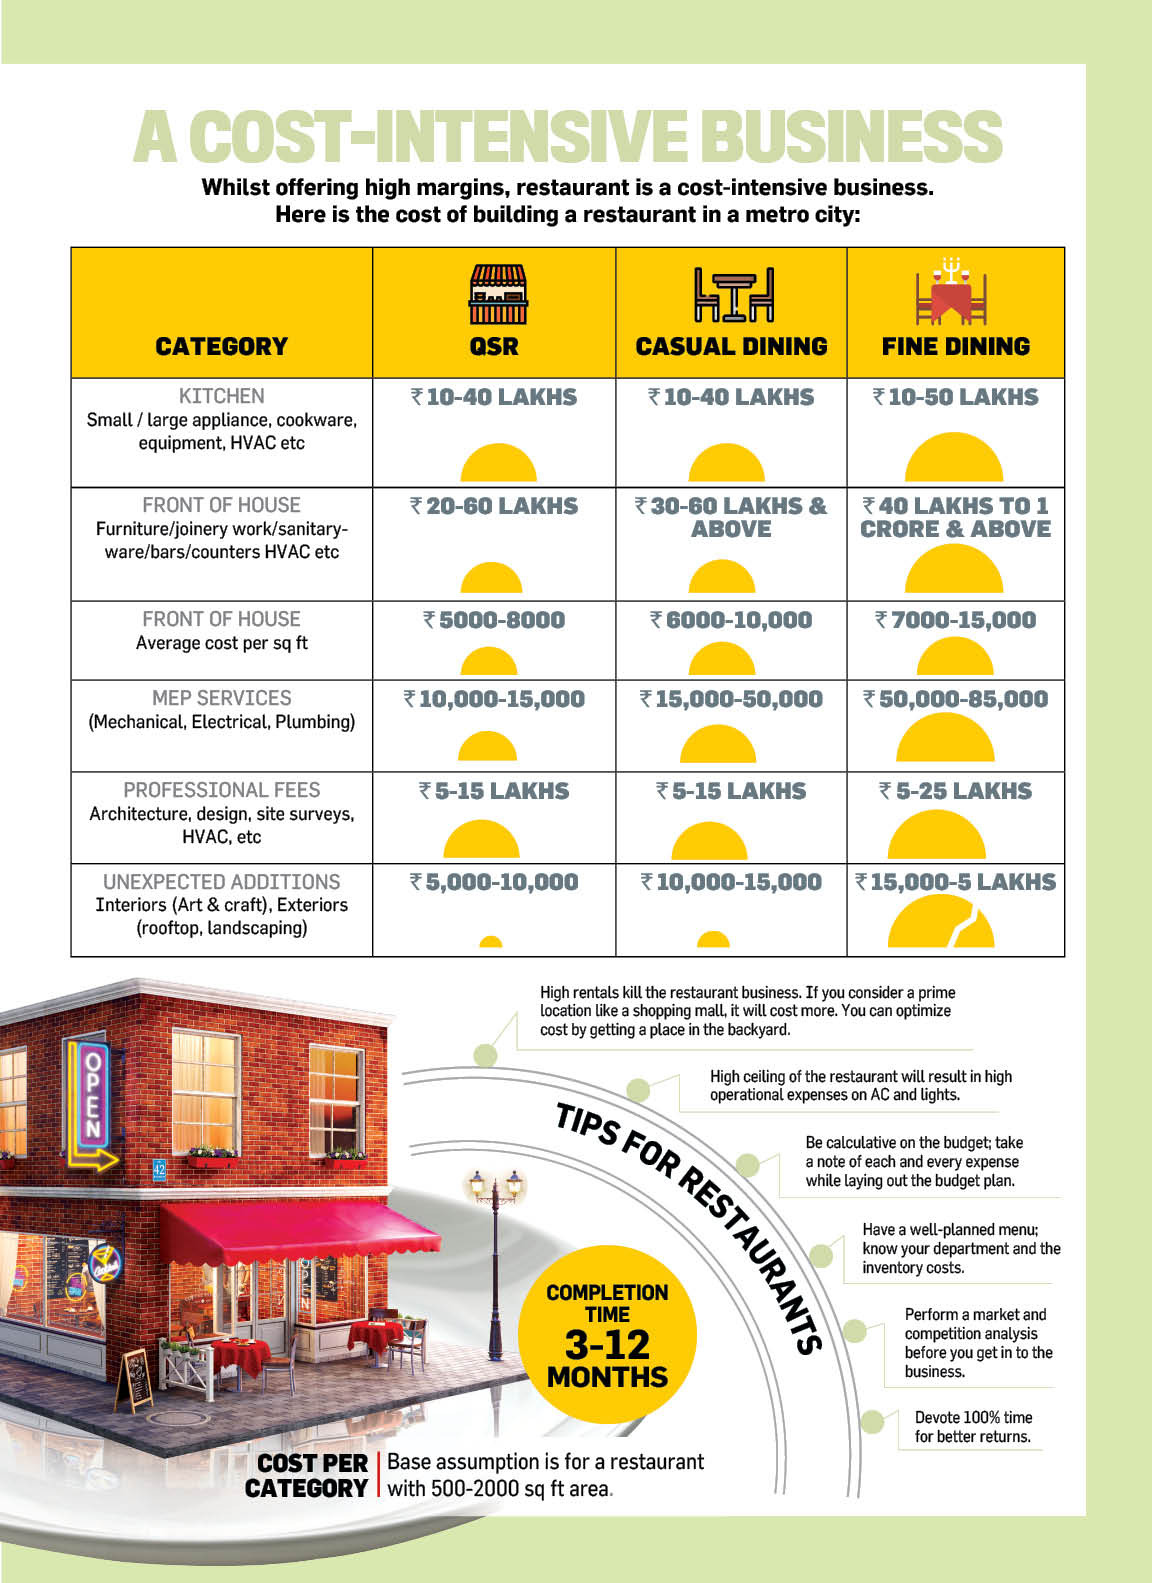 1000 Sq Ft House Construction Cost New the Cost Of Building A Restaurant In Metro Cities In India